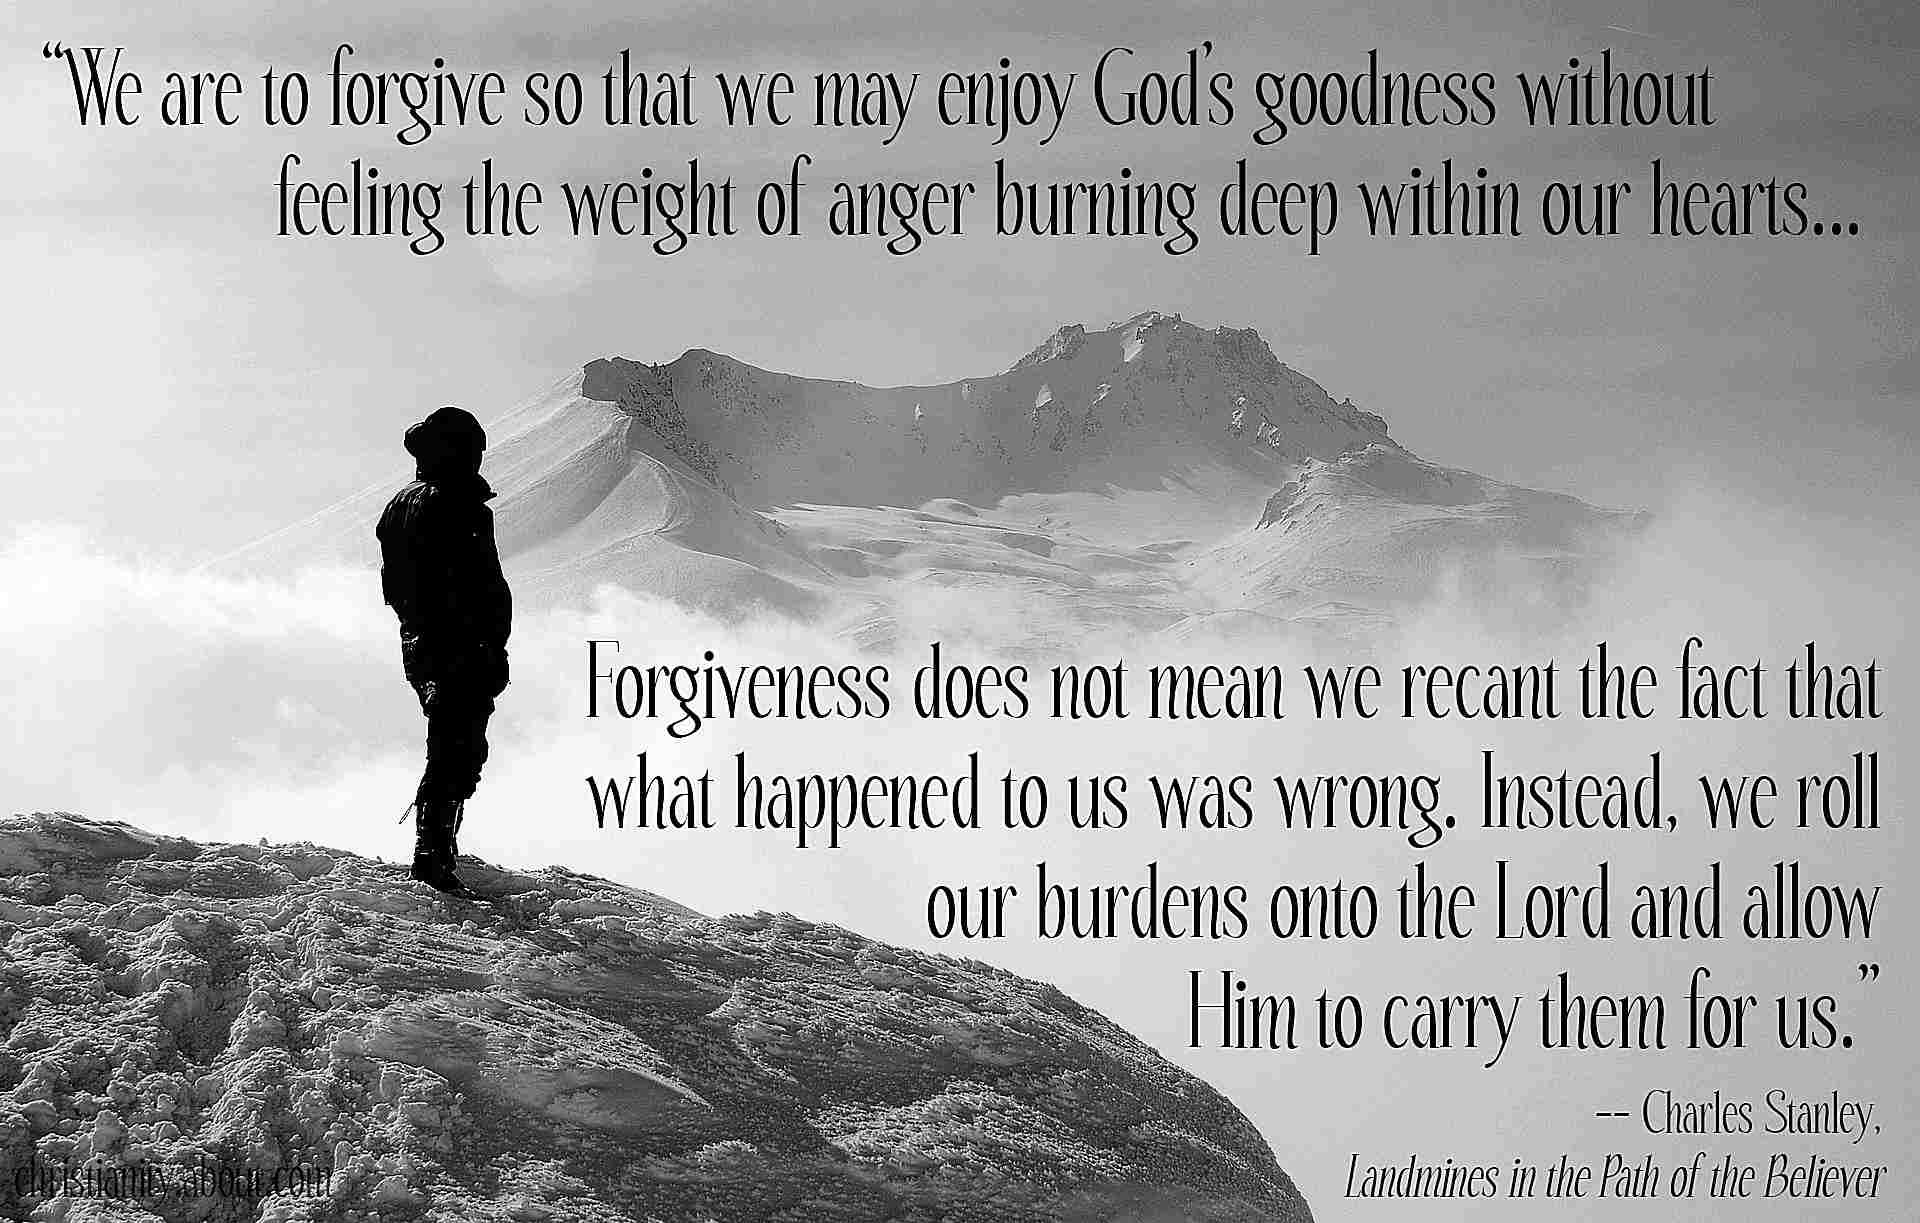 forgive04-mountain-298999-58b5cd603df78cdcd8bf8805.jpg